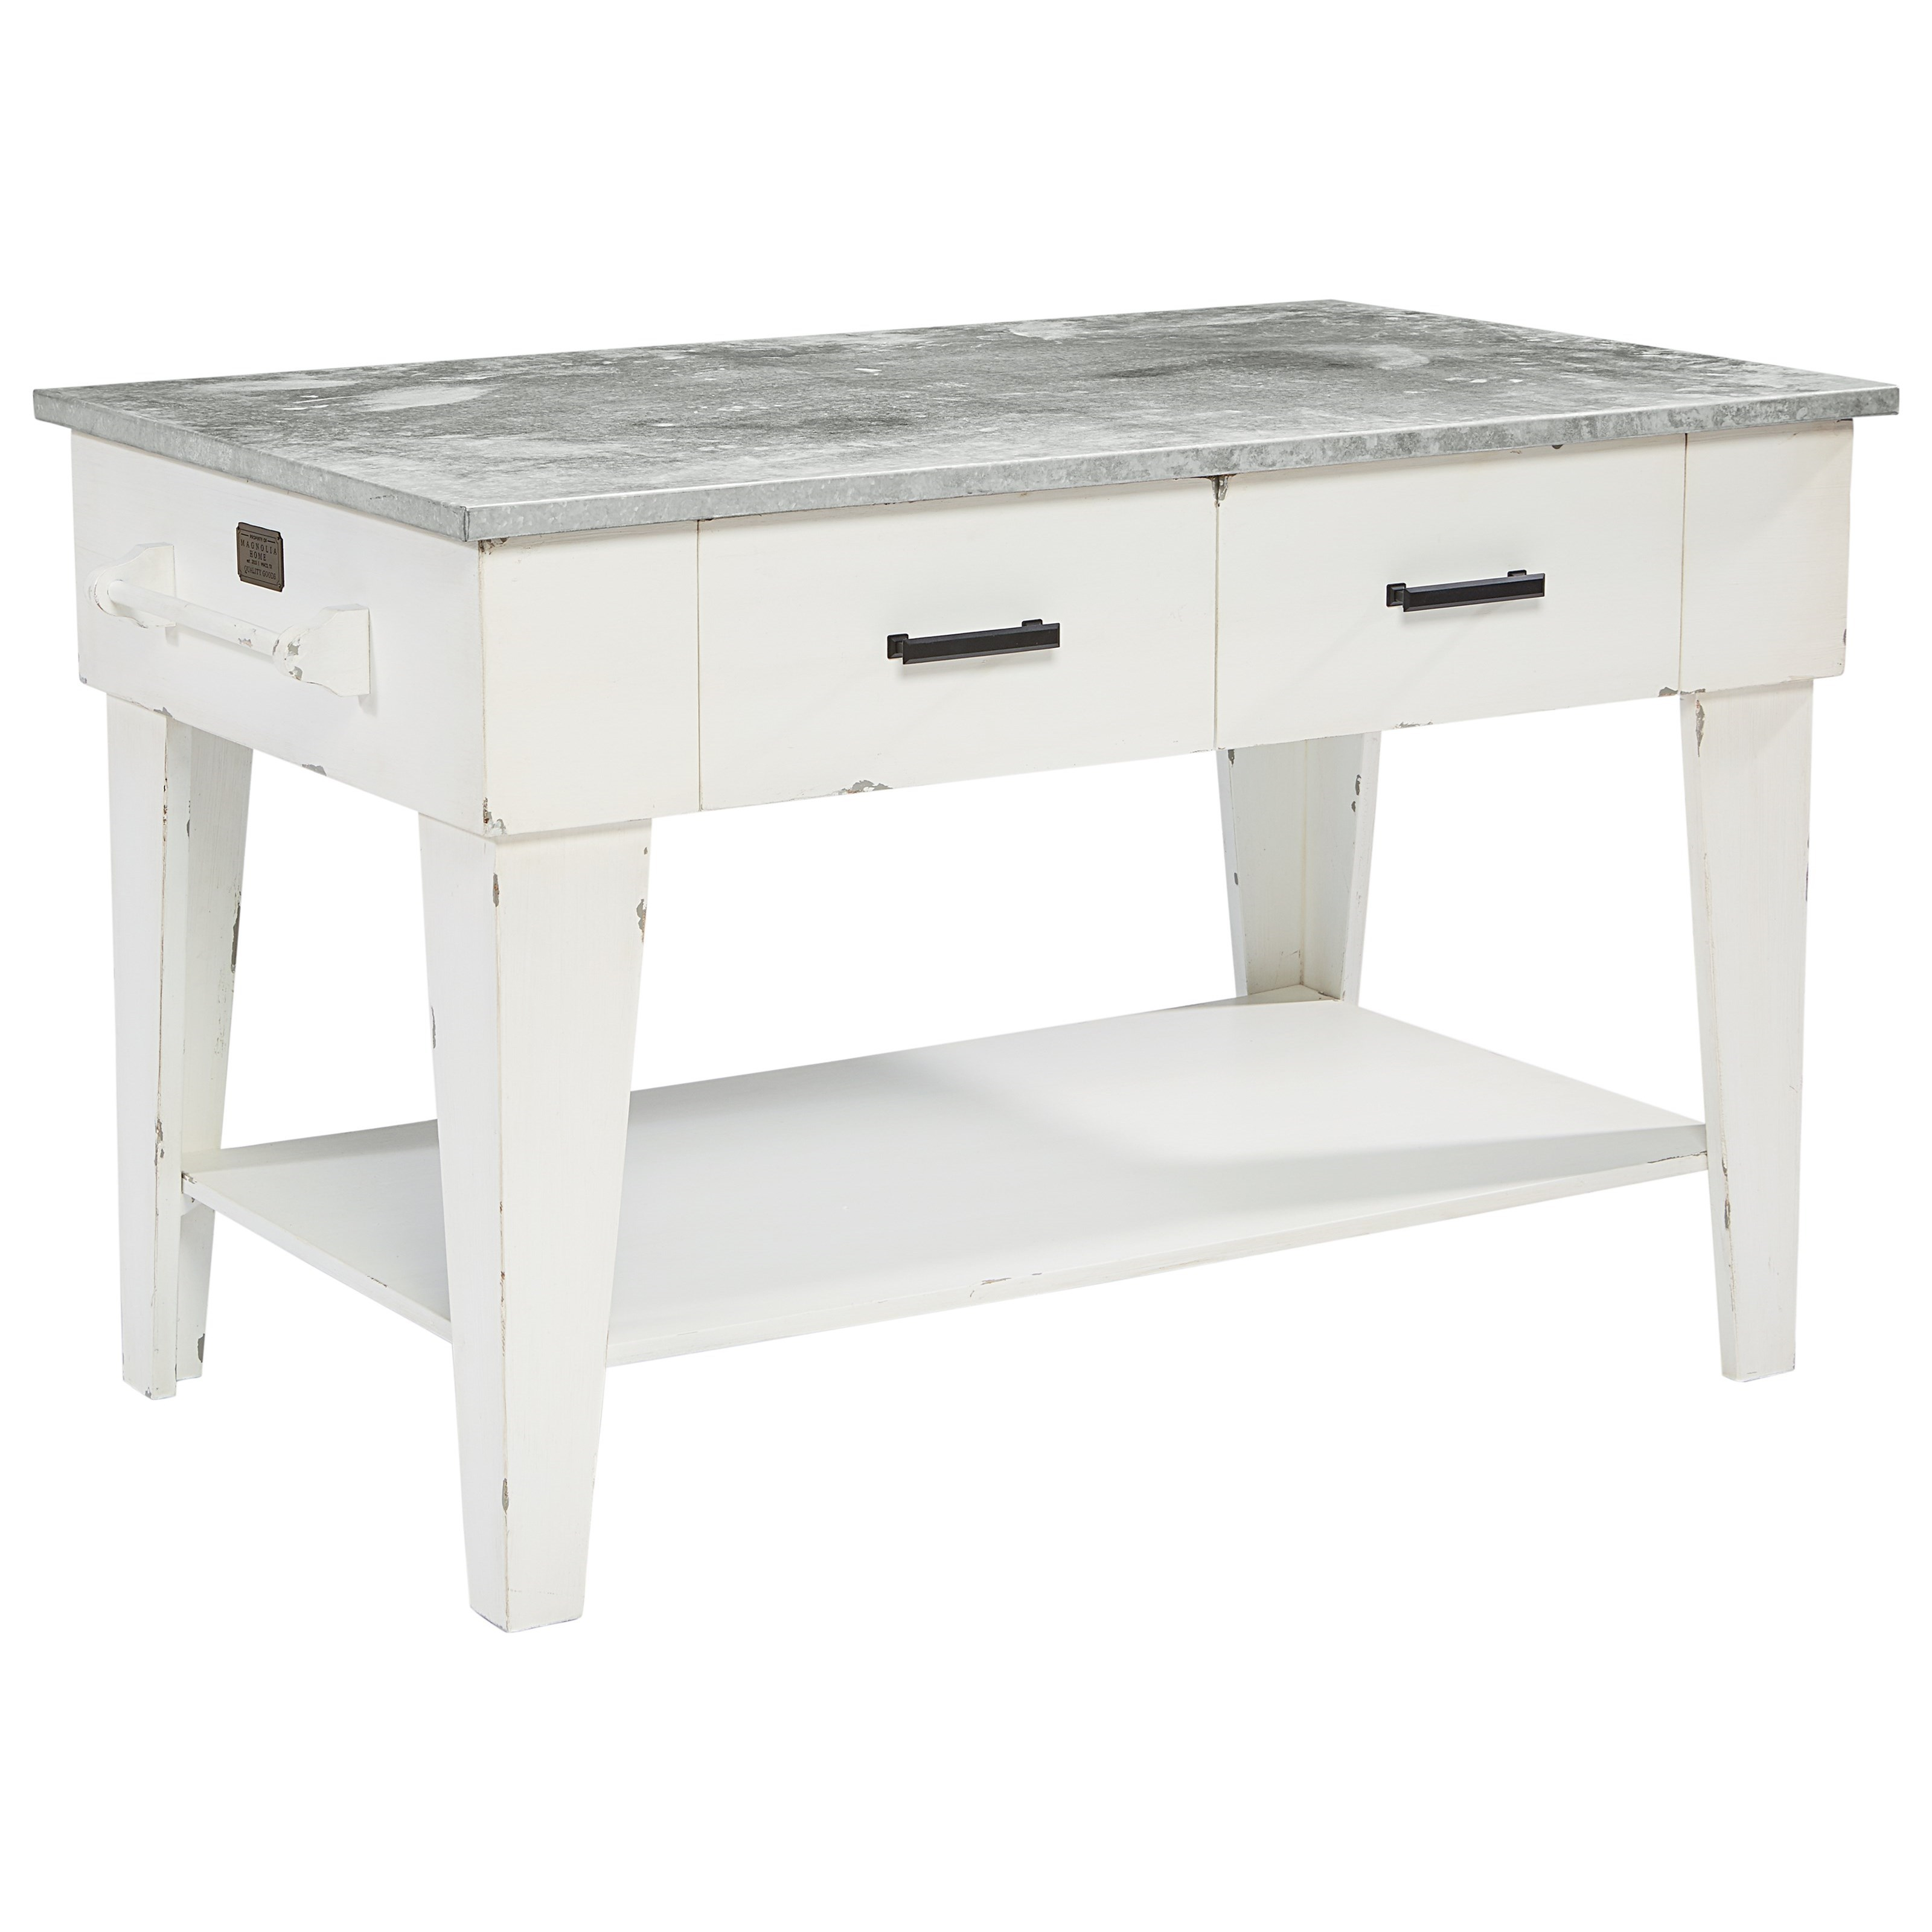 Farmhouse Kitchen Table With Drawers: Magnolia Home By Joanna Gaines Farmhouse Kitchen Island